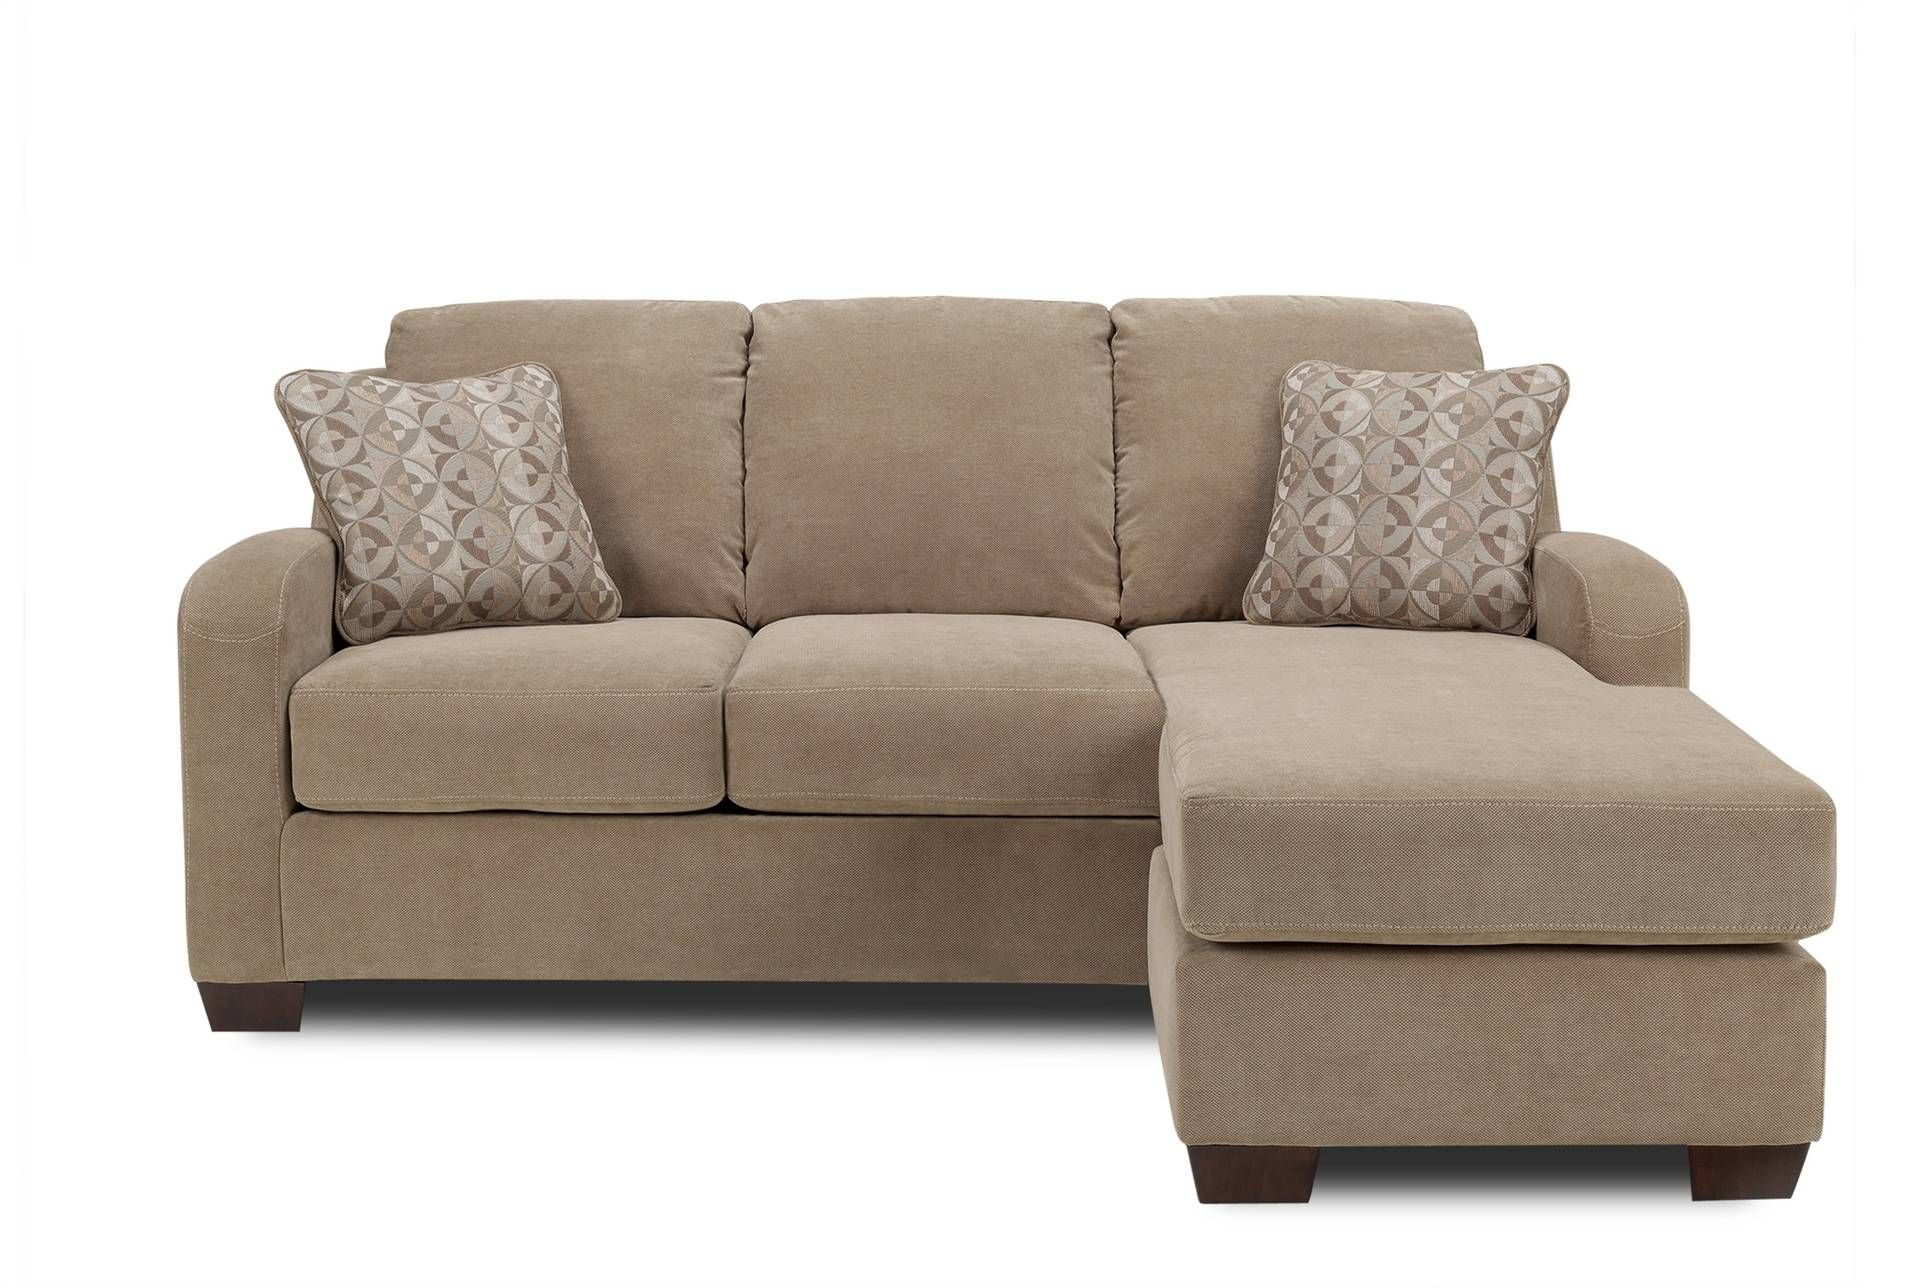 Circa Taupe Living Room Sofa With Chaise | www ...